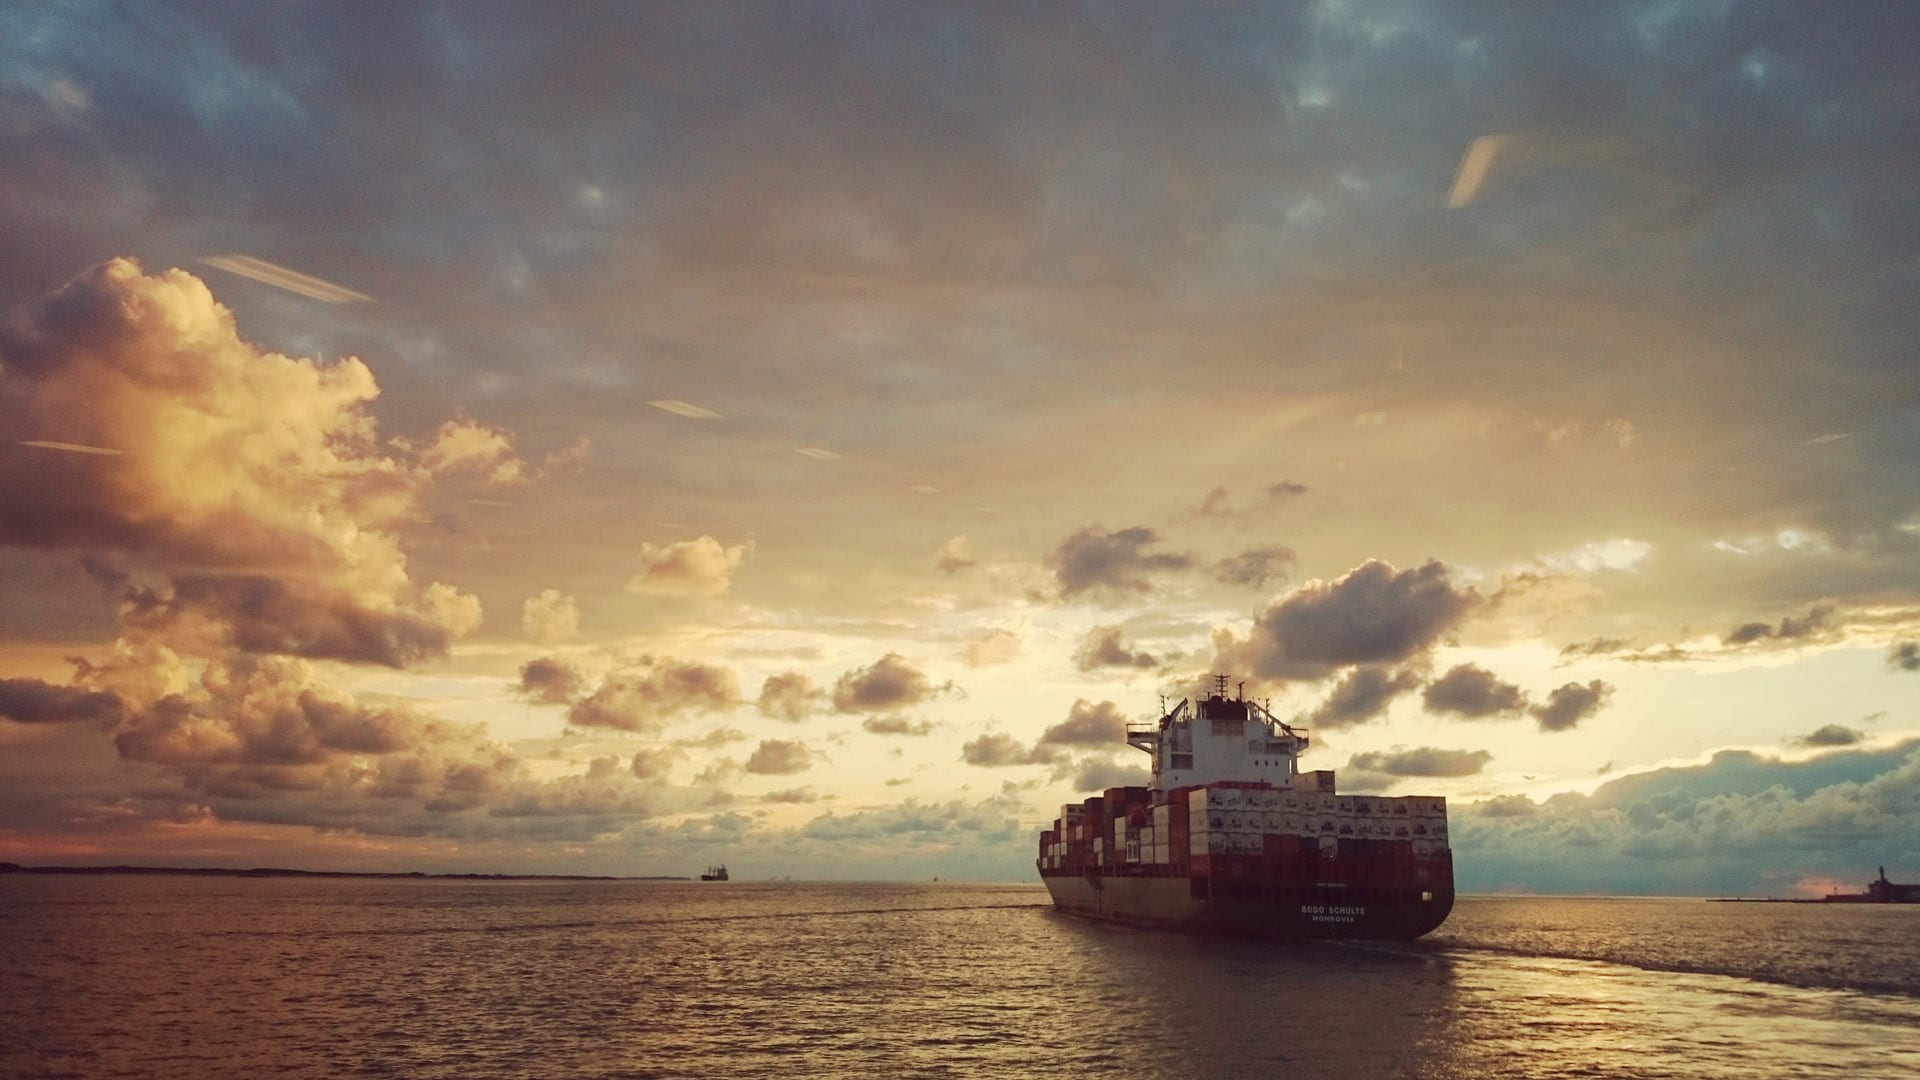 Study: Over USD 1 Trillion Needed to Decarbonize Shipping by 2050